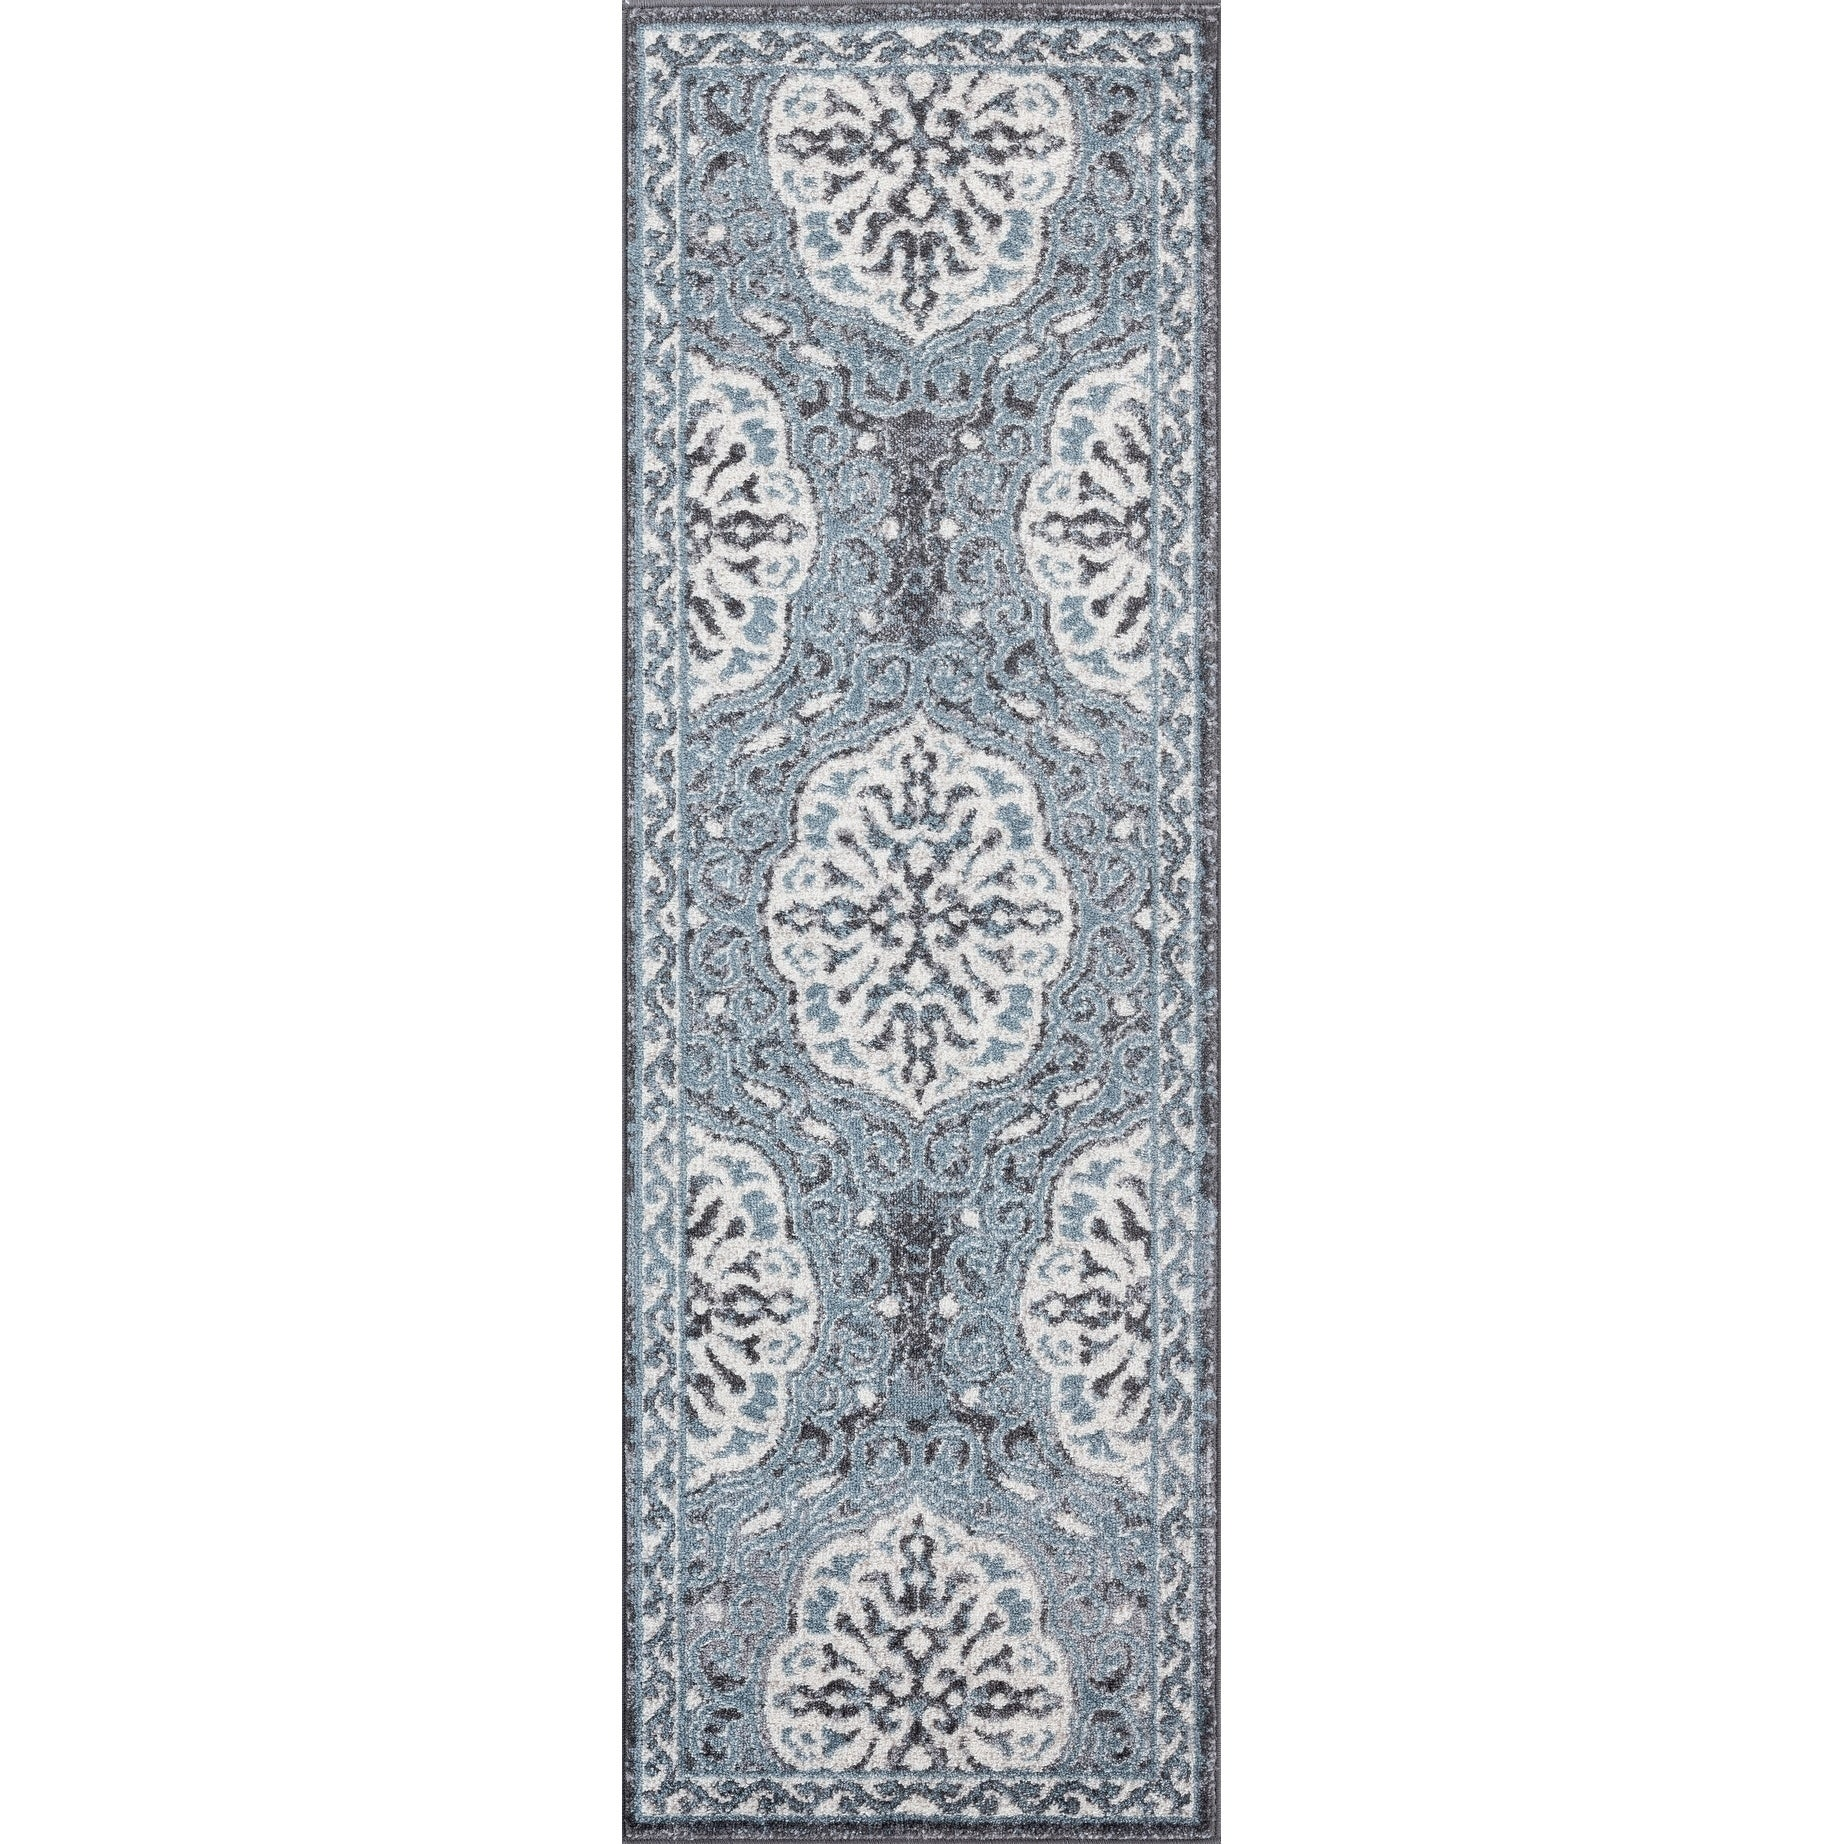 Aurelia Wilton-woven Transitional Grey-Blue Runner Rug - 2 x 6 Runner (Grey/Blue - 2 x 6 Runner)